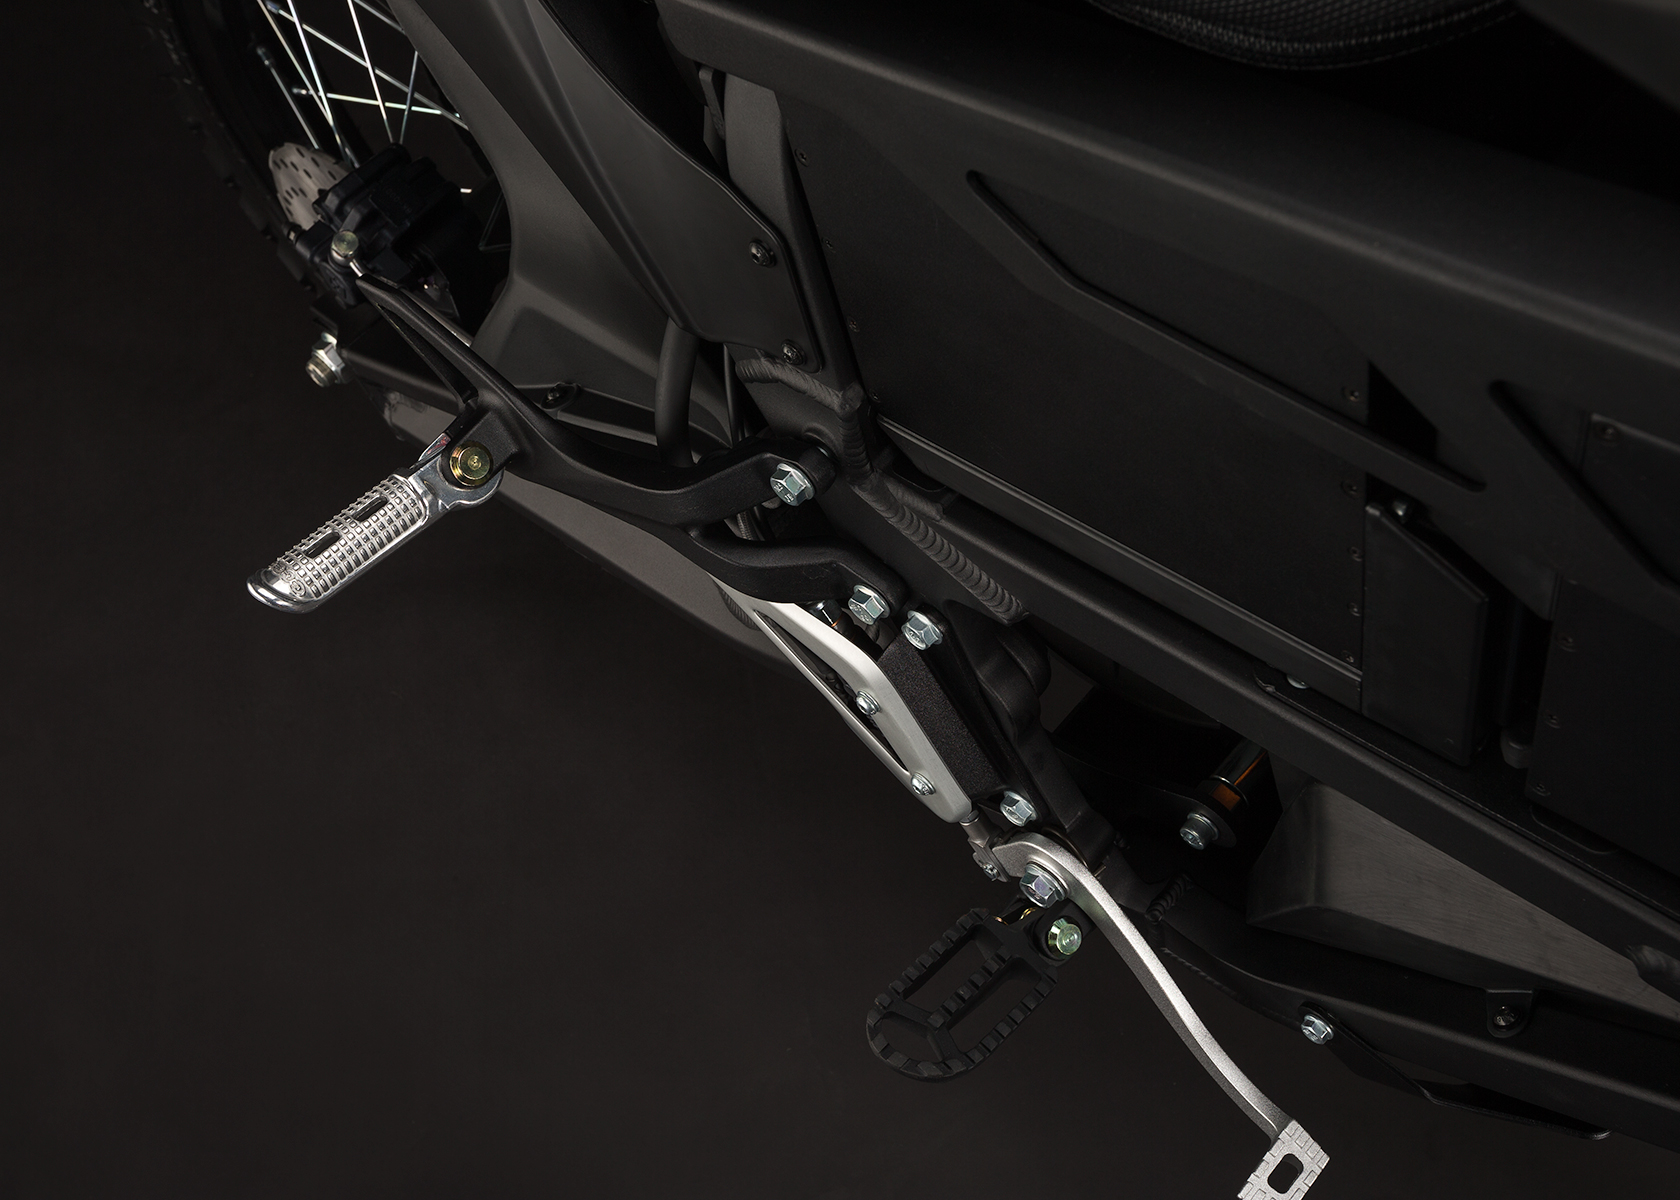 2014 Zero FX Electric Motorcycle: Footpegs